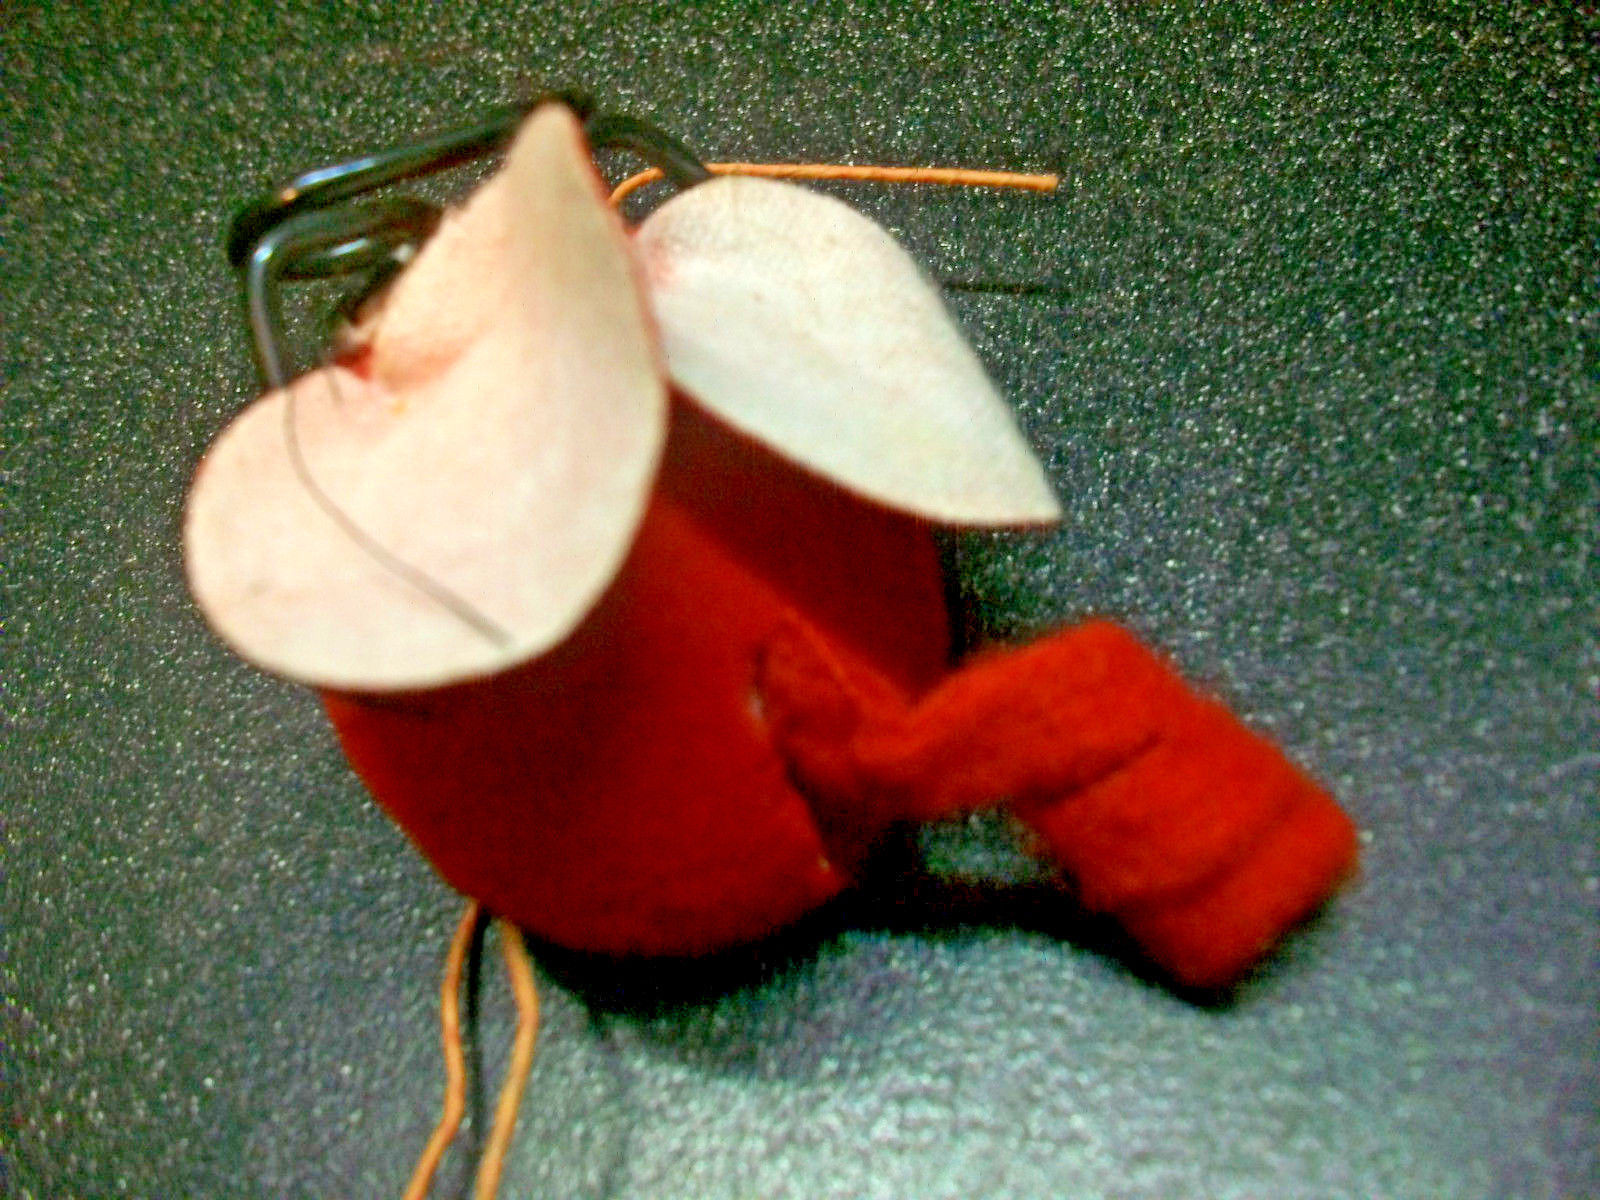 6 CURLY TAIL MOUSE CHRISTMAS ORNAMENTS MICE PACKAGE WREATH TREE CRAFT DECORATION